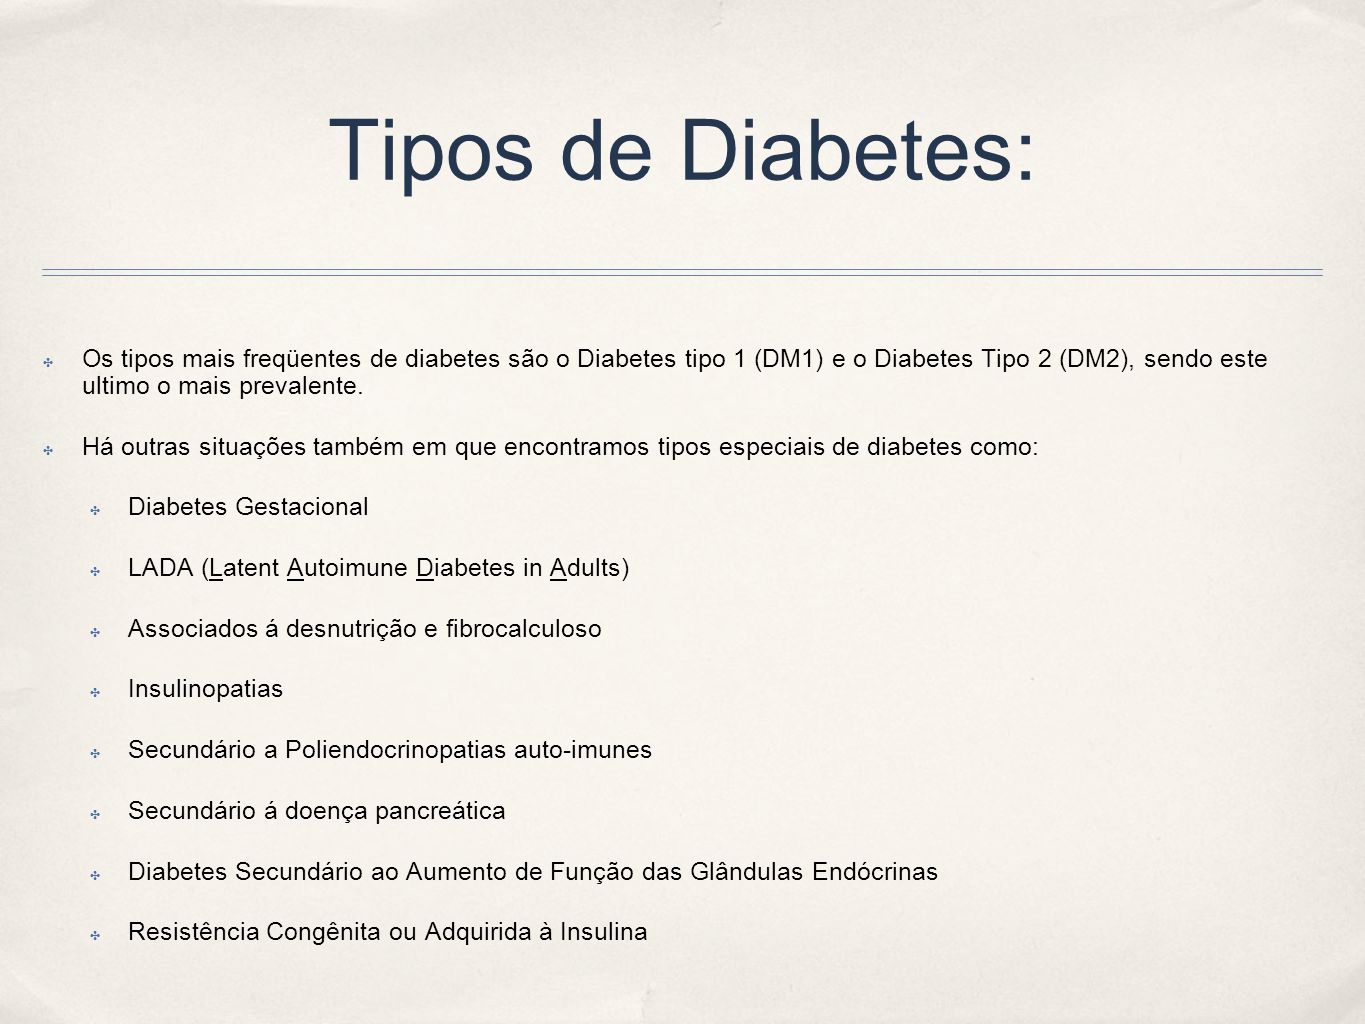 Tipos de Diabetes: Os tipos mais freqüentes de diabetes são o Diabetes tipo 1 (DM1) e o Diabetes Tipo 2 (DM2), sendo este ultimo o mais prevalente.